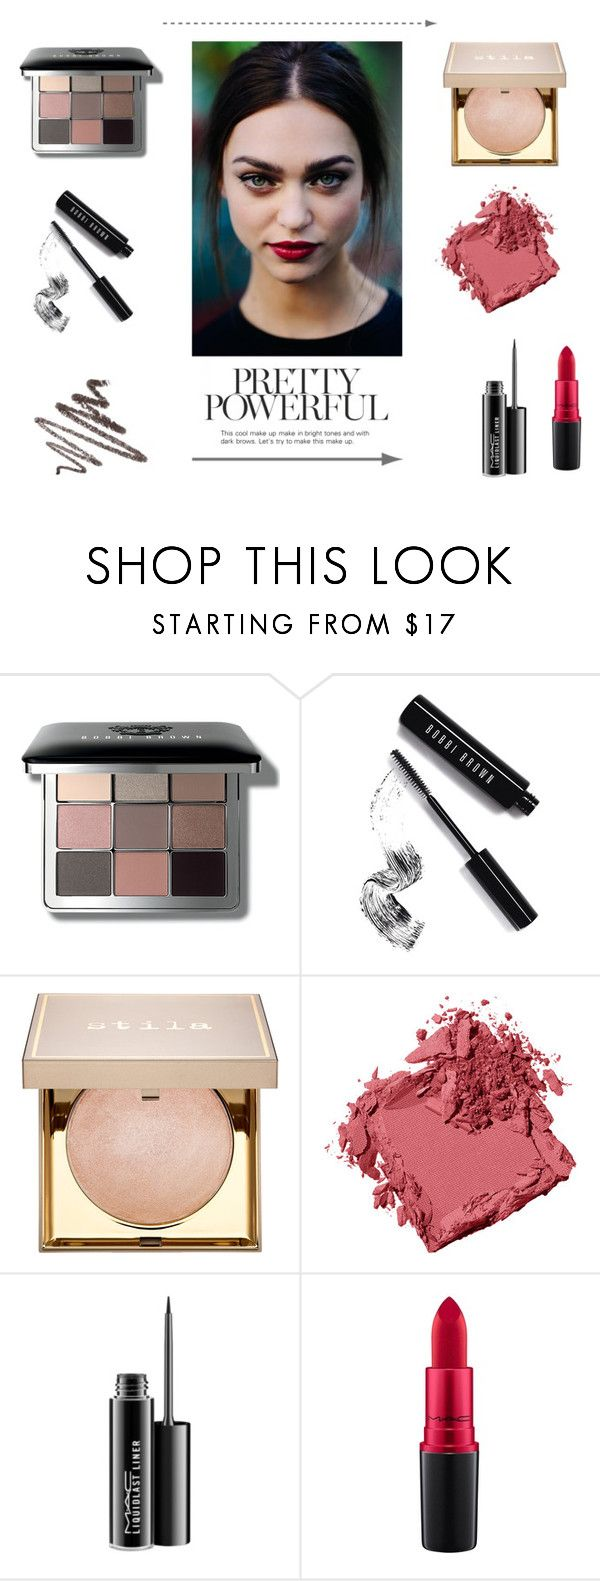 """""""Cute Make Up"""" by fashionharmonyblog ❤ liked on Polyvore featuring beauty, Bobbi Brown Cosmetics, Stila, MAC Cosmetics, Maybelline, BeautyTrend, Beauty, Model and trend"""